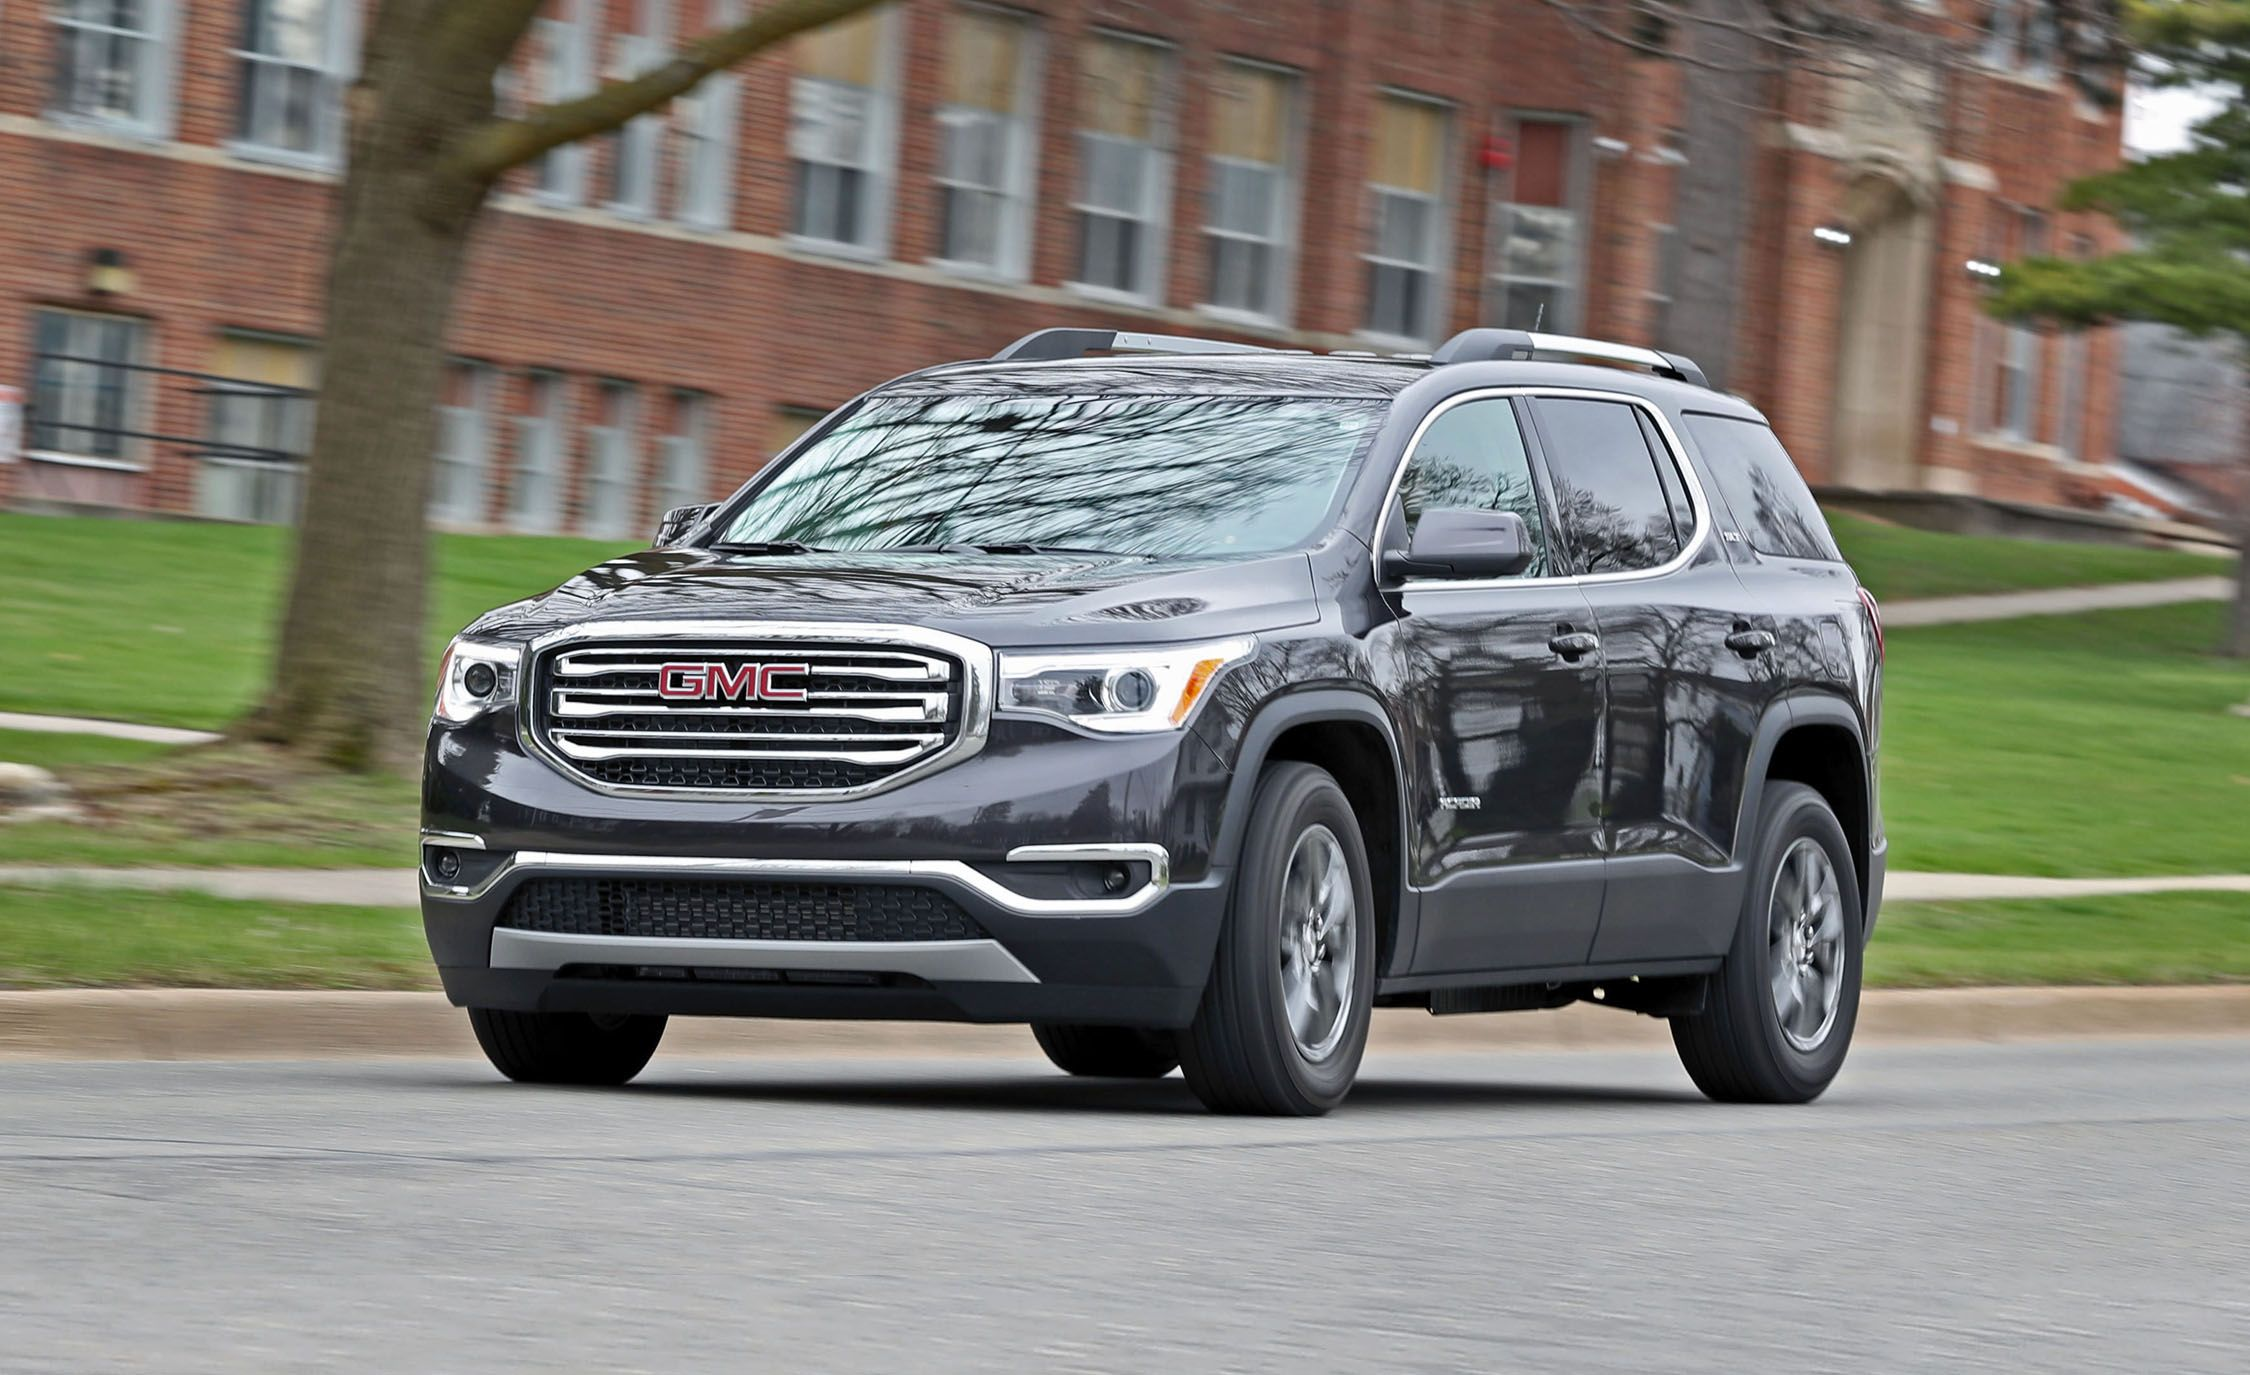 GMC Acadia Reviews GMC Acadia Price s and Specs